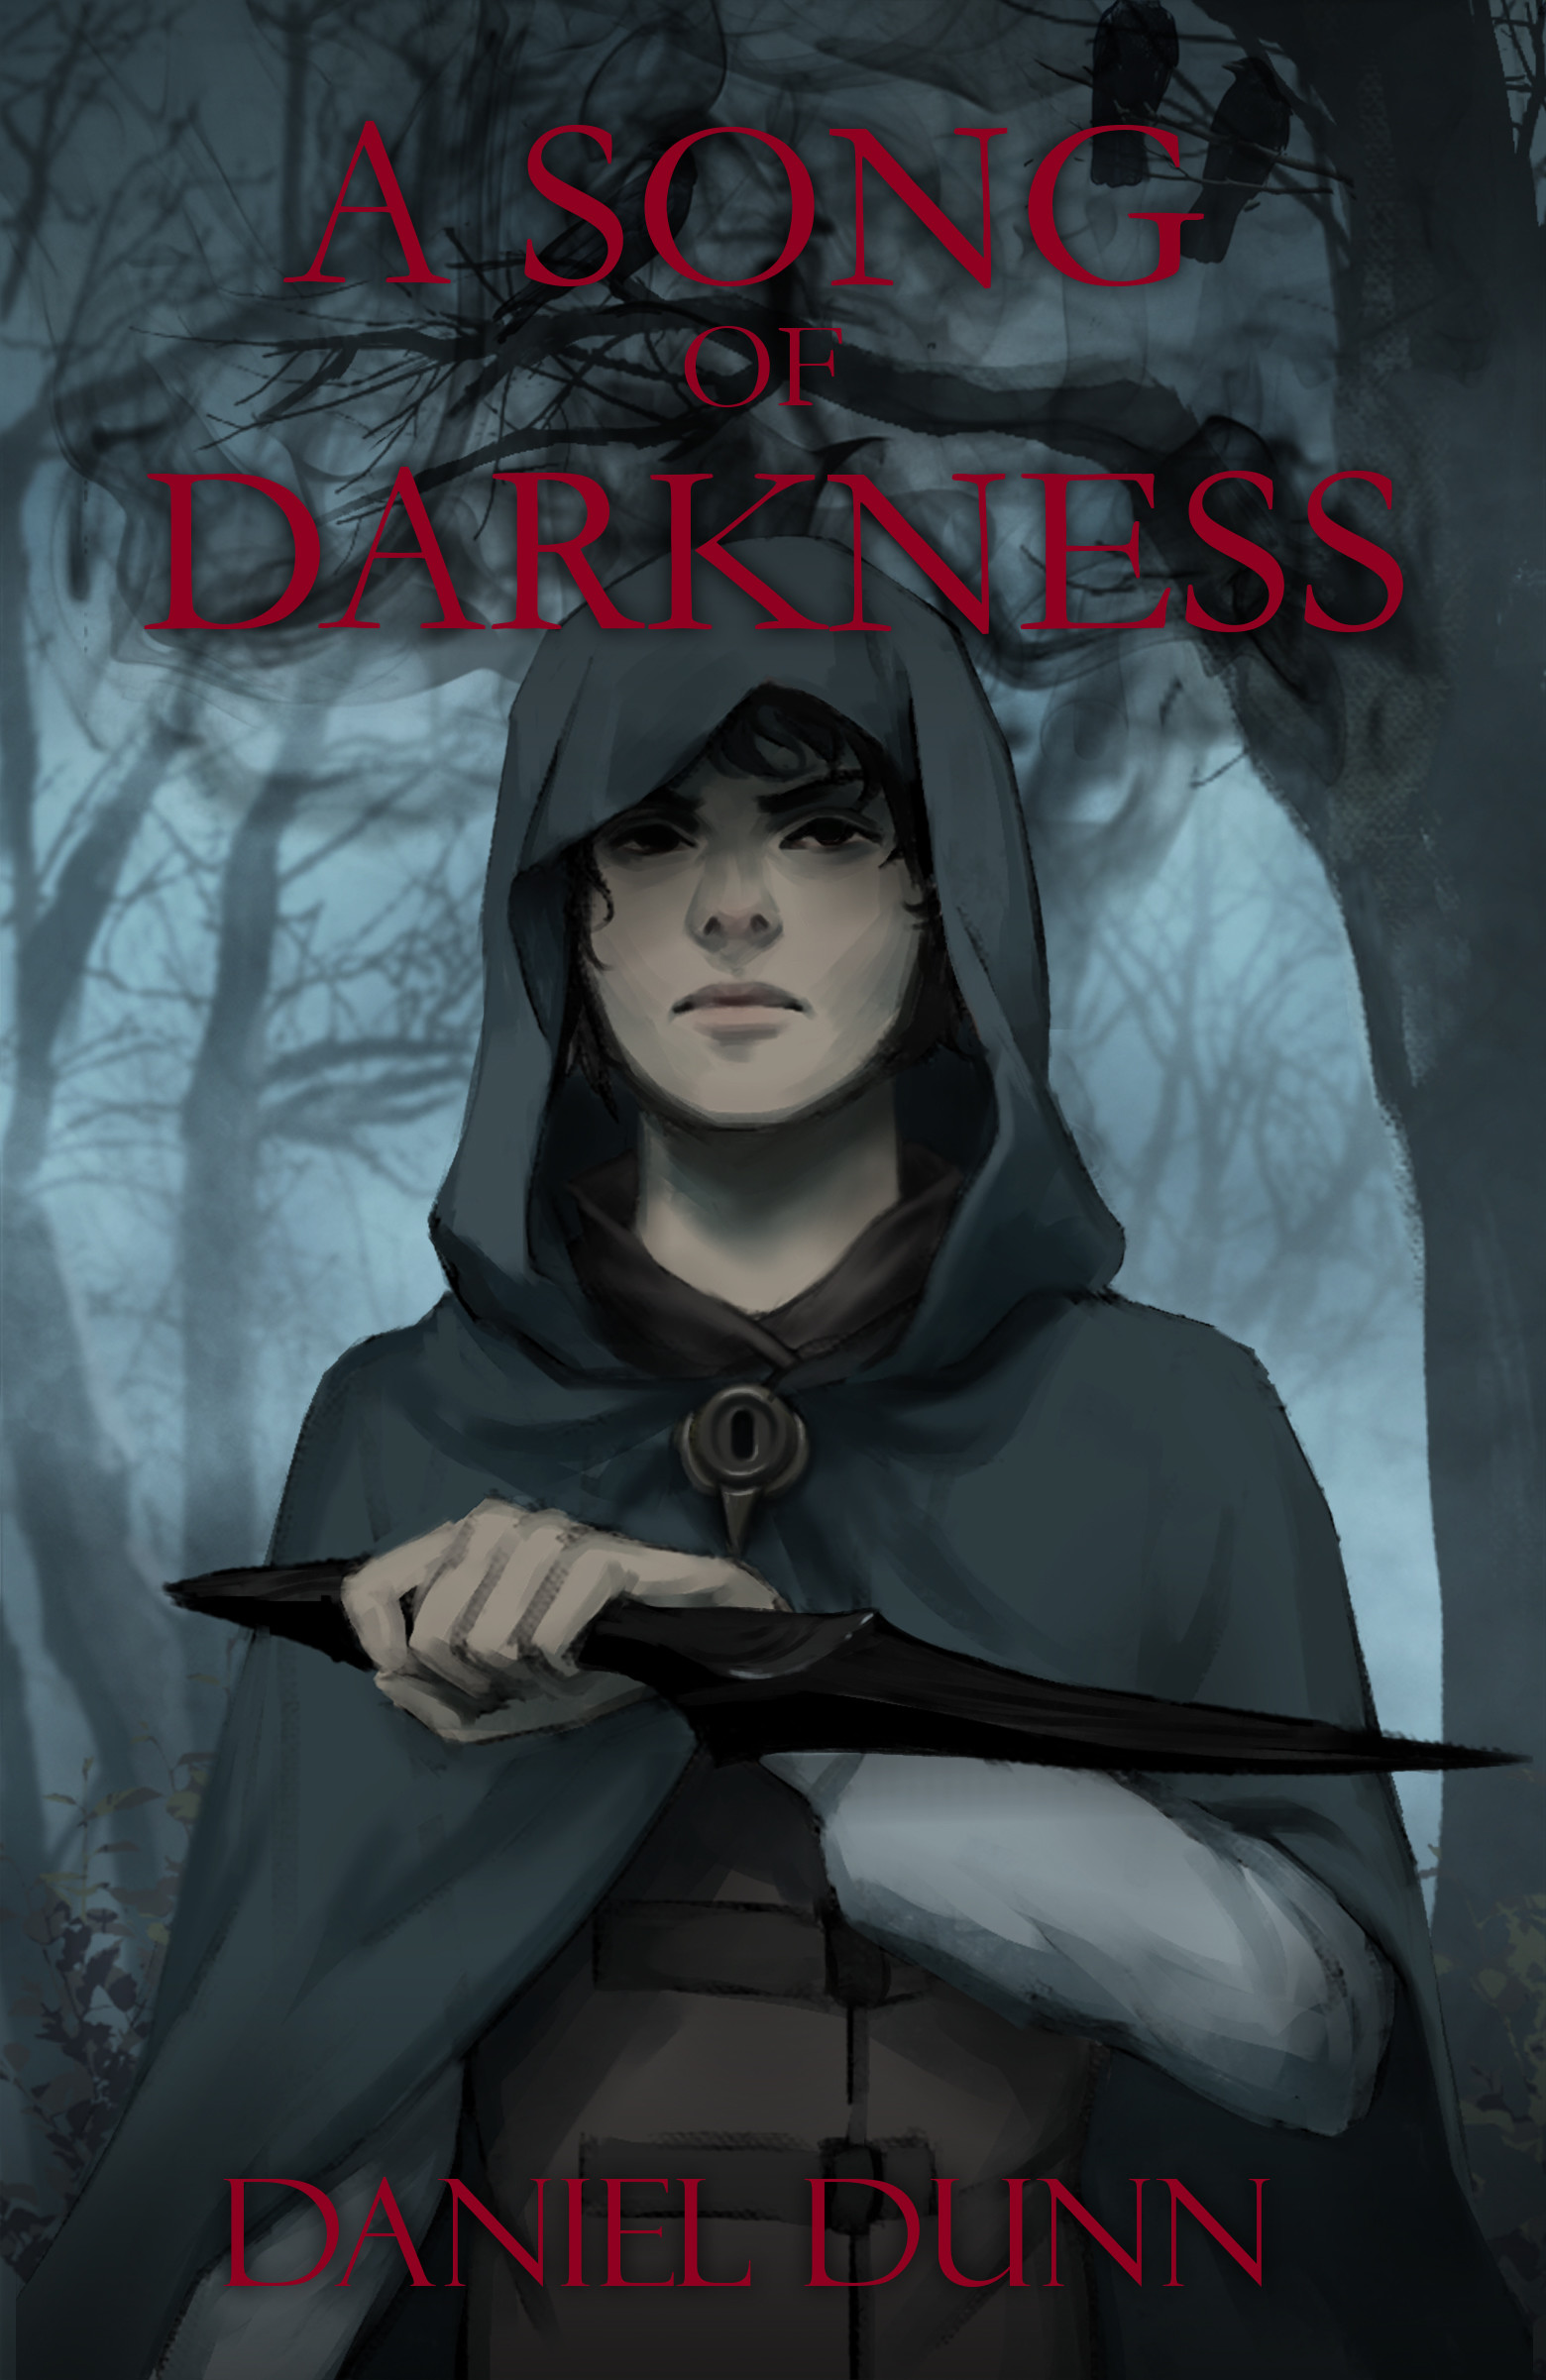 A Song of Darkness